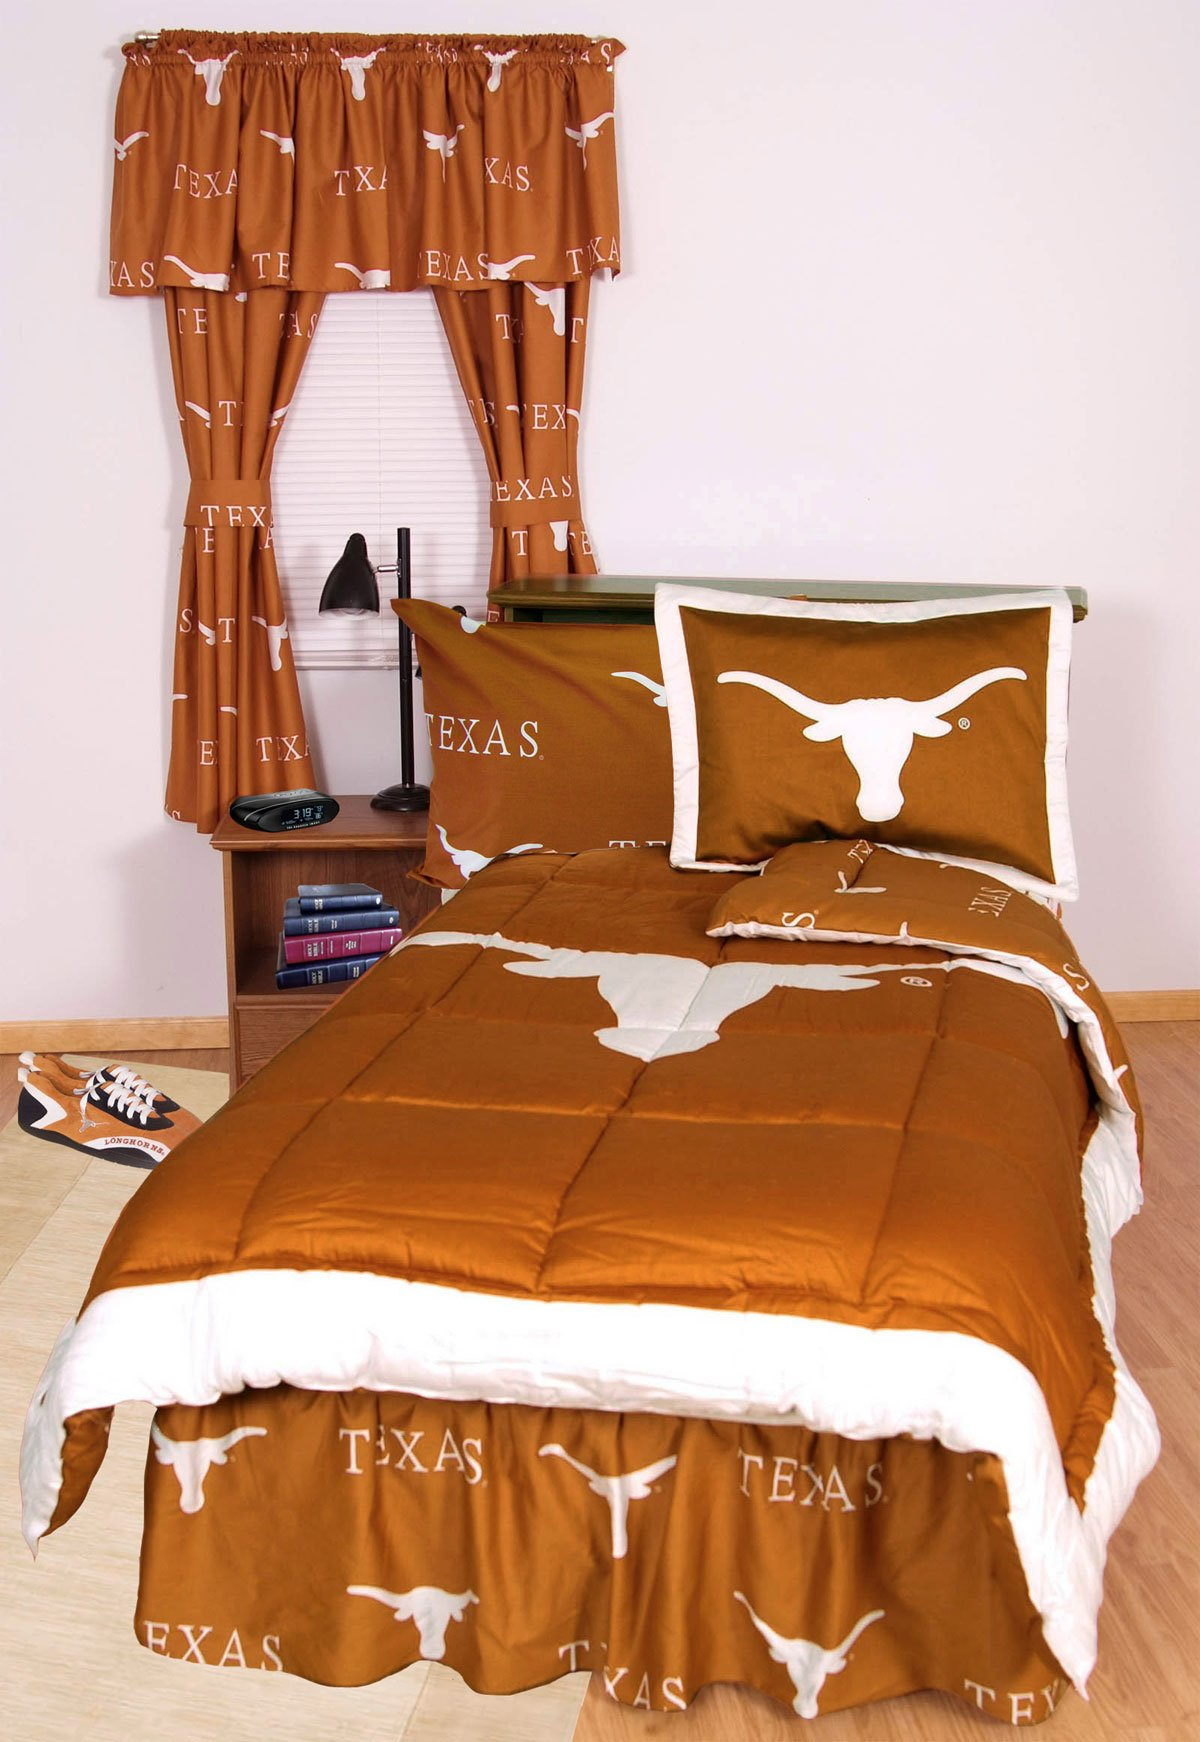 College Covers Texas Longhorns Printed Sheet Set - King - Solid by College Covers